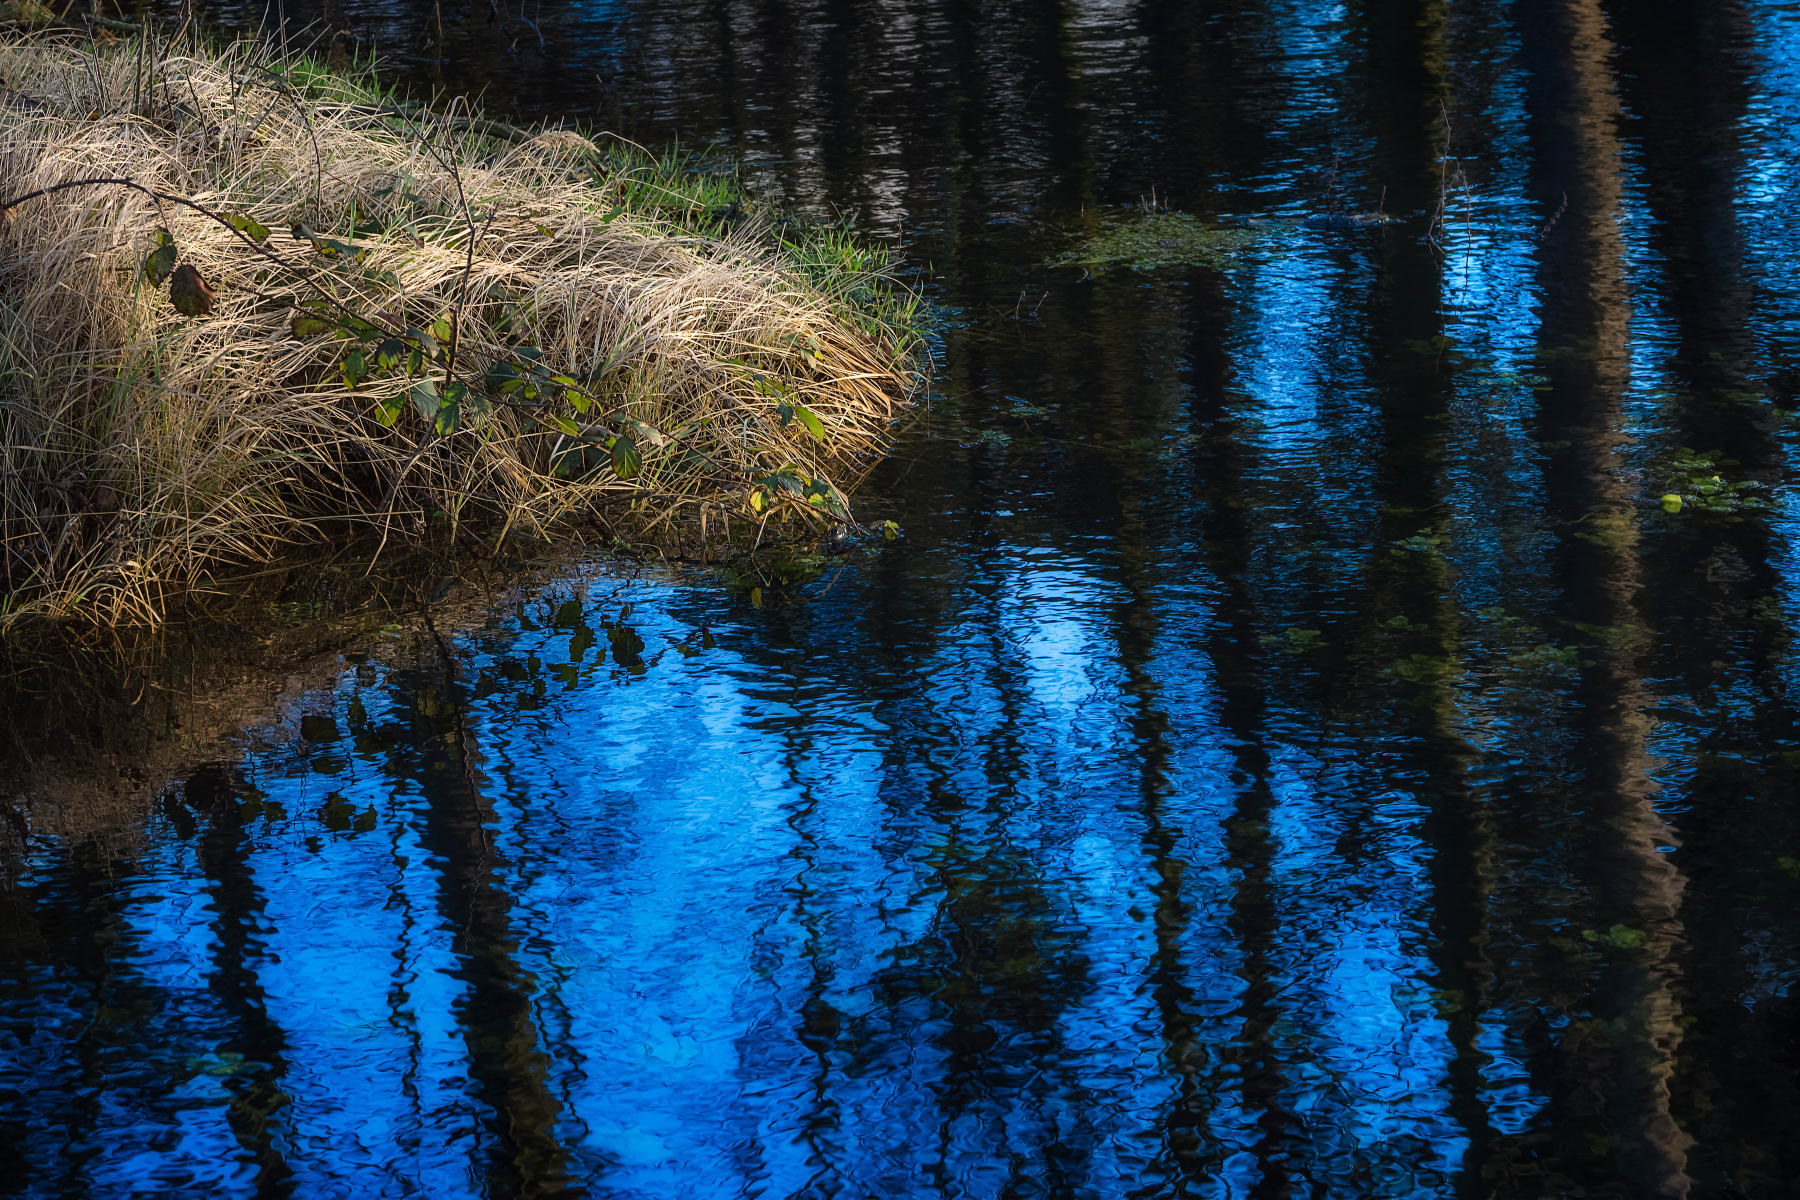 lost in blue reflections